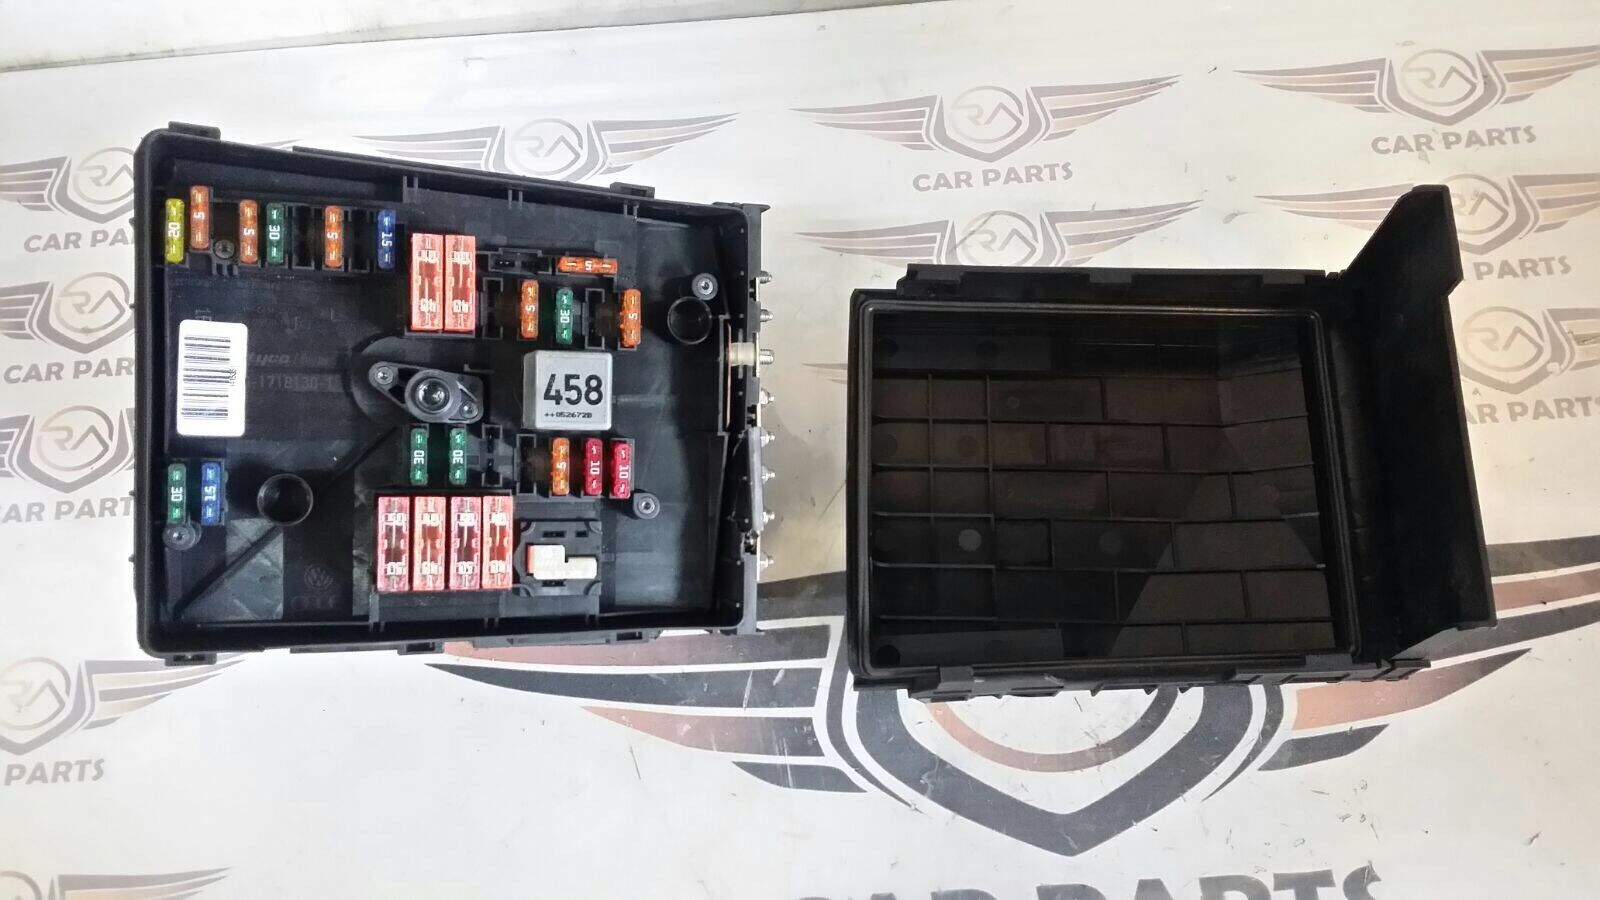 Genuine Audi A3 Mk2 8p 19 Tdi 03 10 Under Bonnet Fuse Box 1718130 1 Of 7only Available